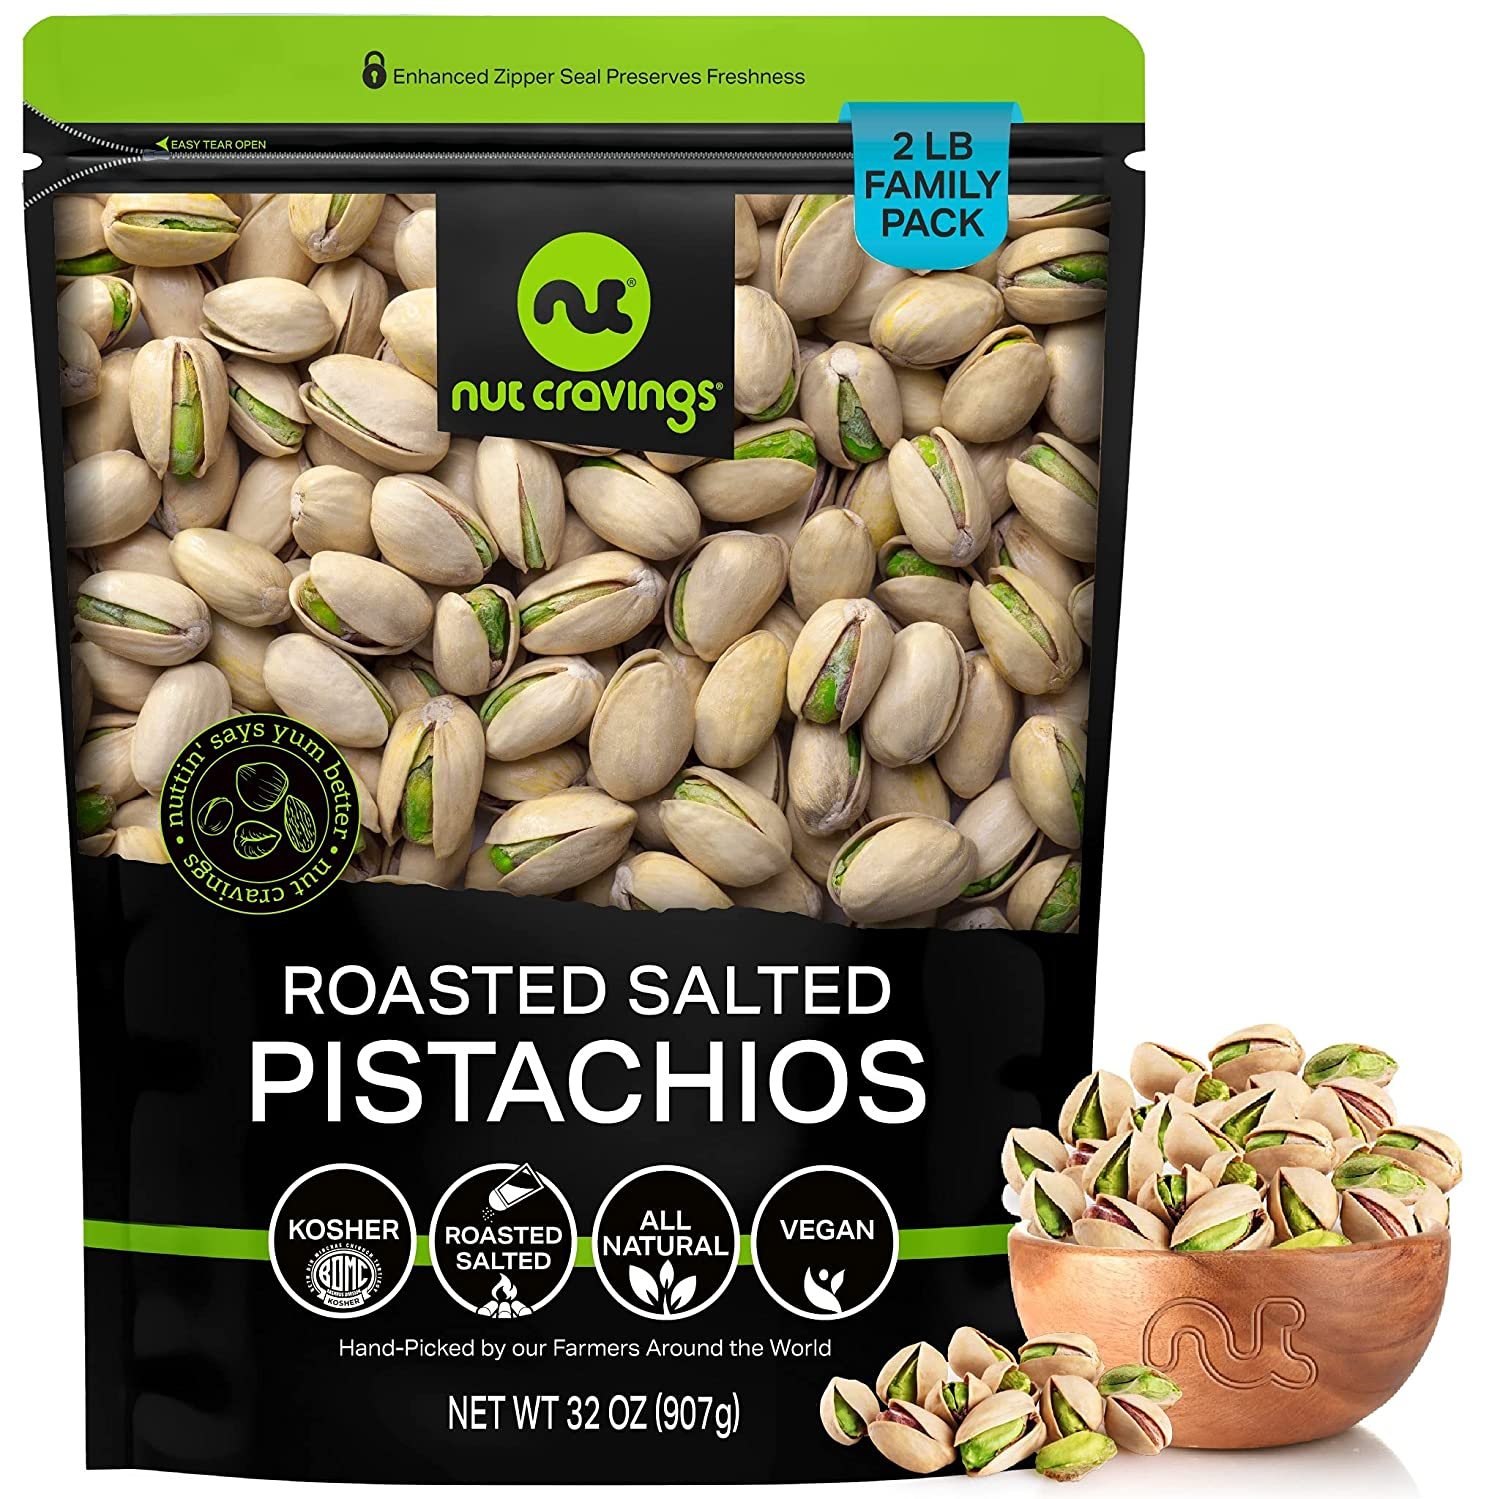 Freshly Roasted Salted California Pistachios - LB Finally resale start 2 Pac Max 80% OFF 32oz